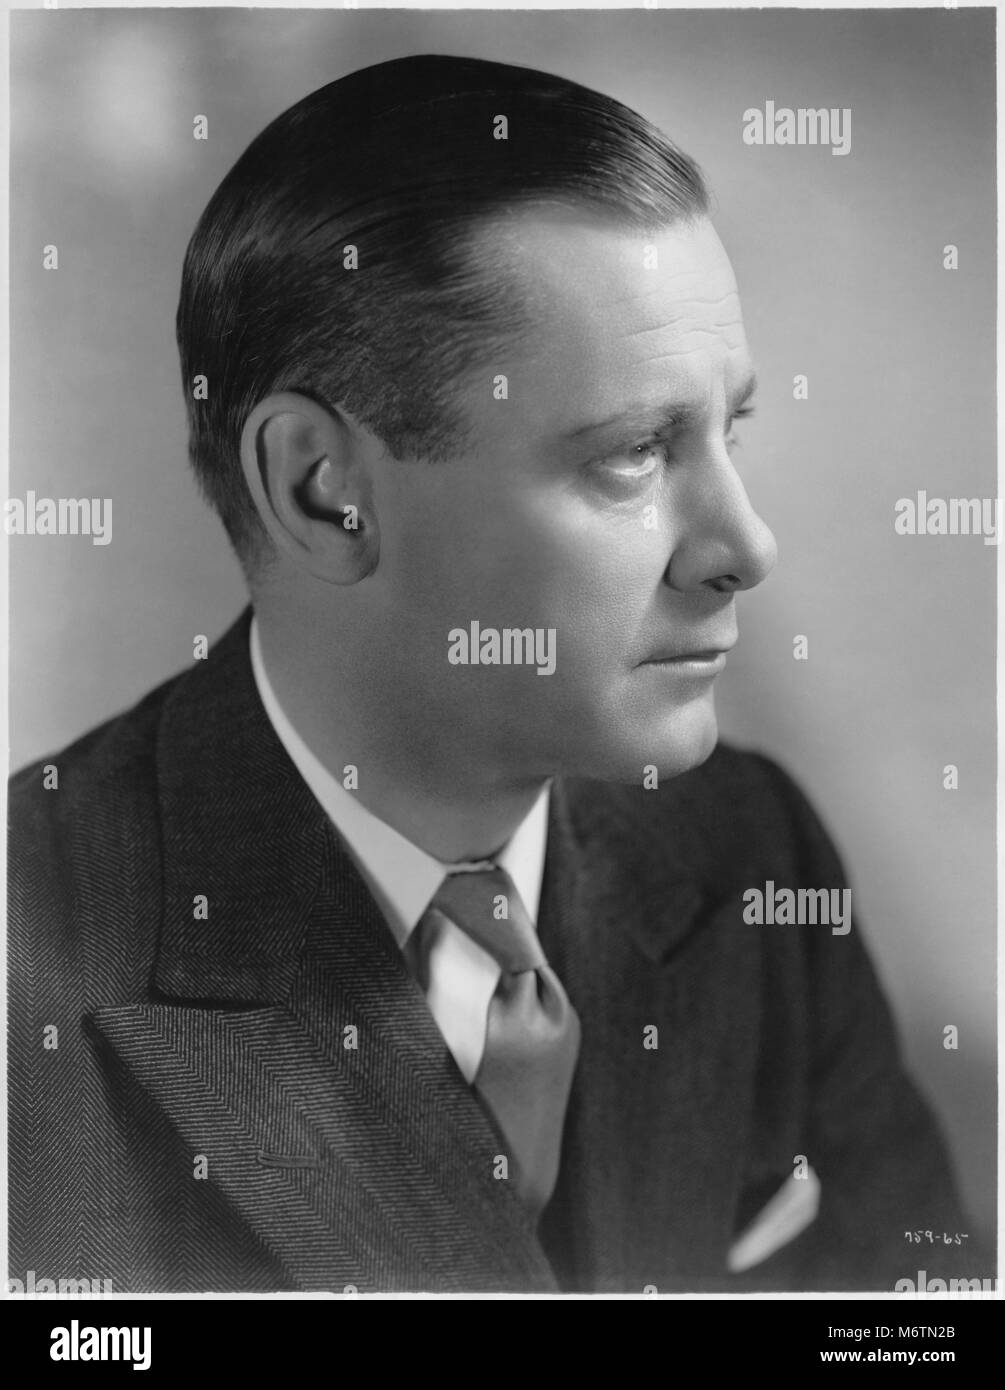 "Herbert Marshall, Publicity Portrait for the Film, ""Outcast Lady"", MGM, 1934 Stock Photo"